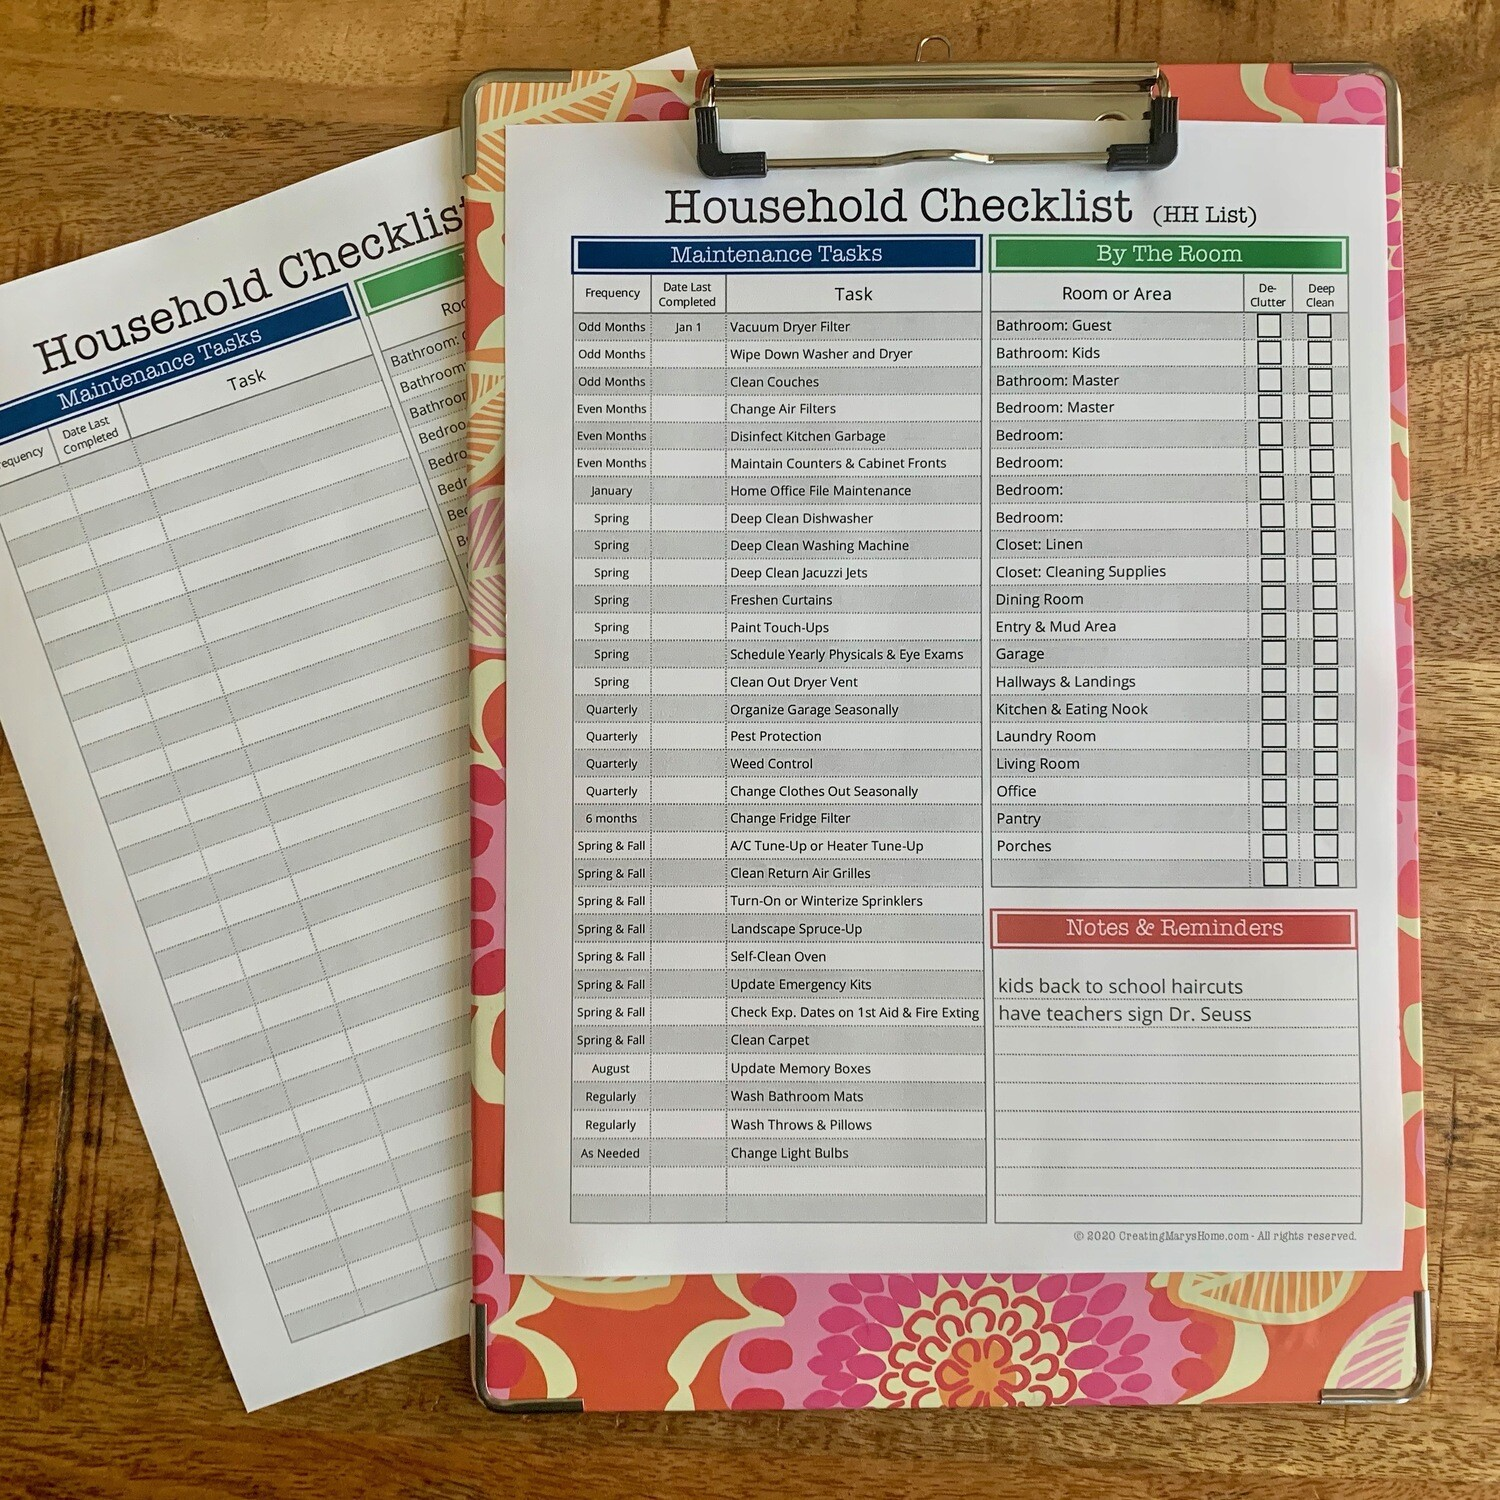 HH List - Household Management Checklist (customizable)